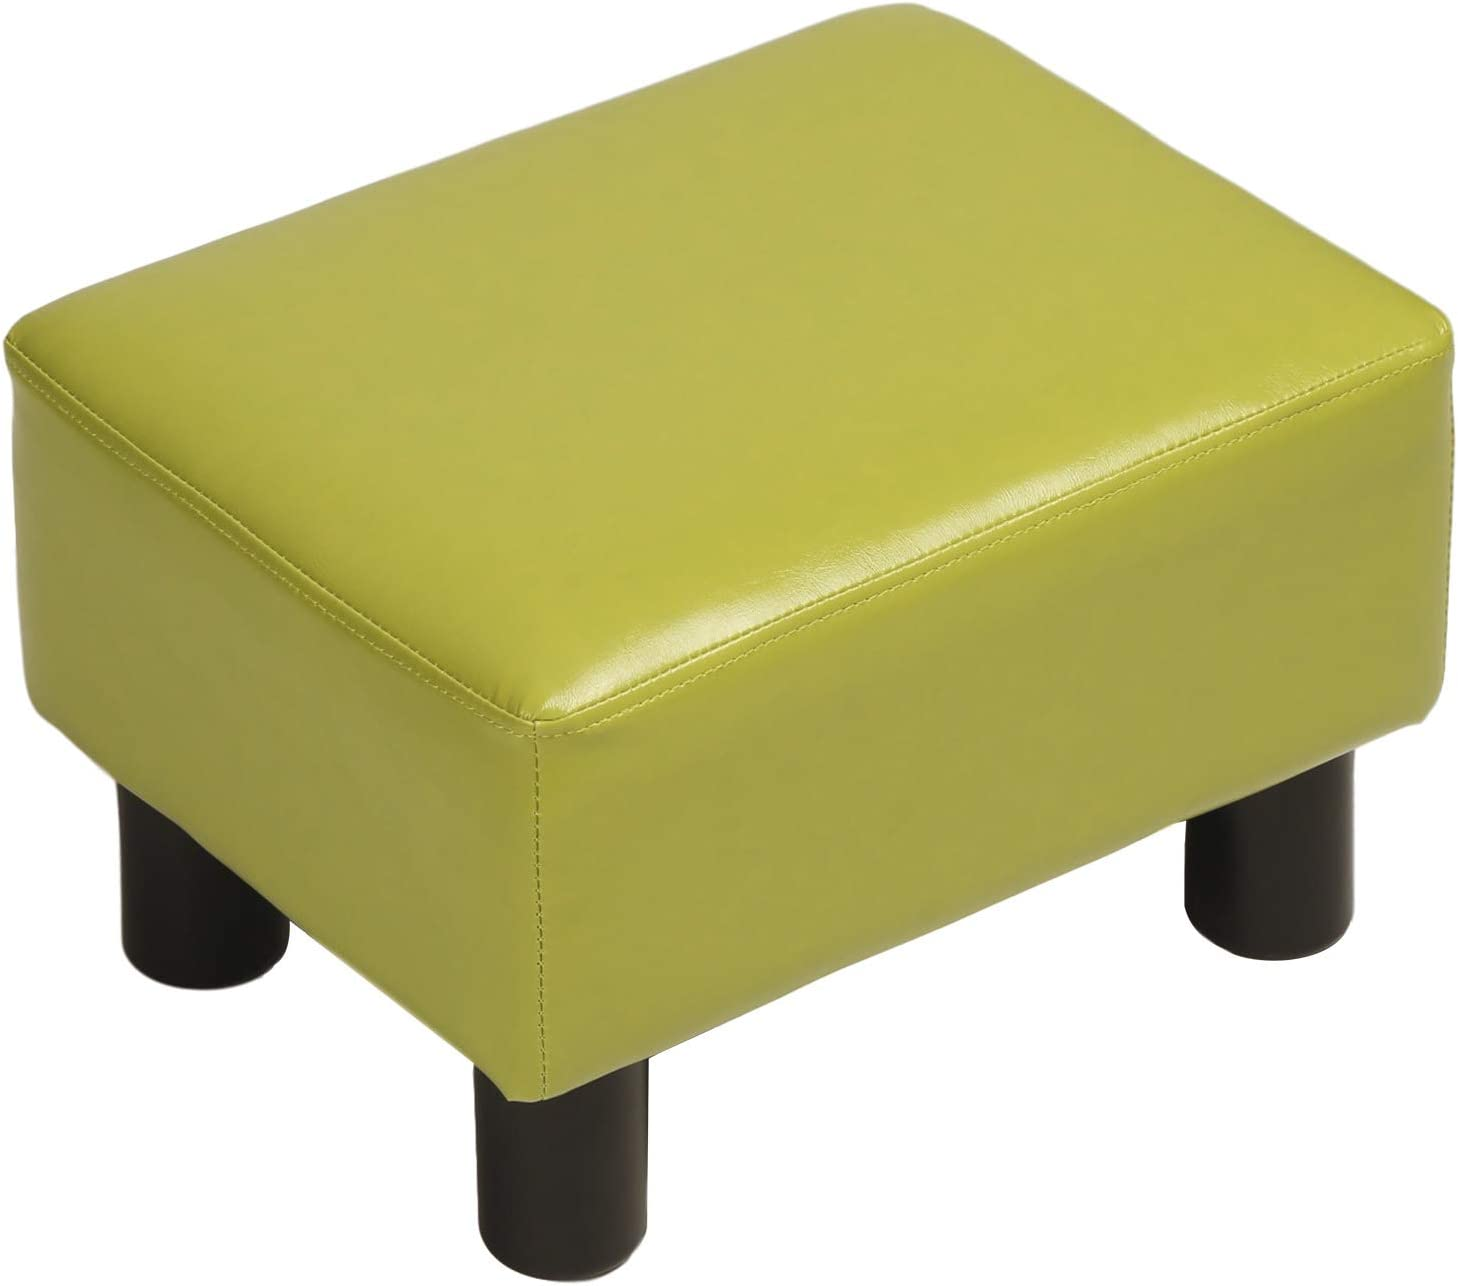 windaze Ottoman Footrest Stool PU Leather Seat Couch Small Chair,Green